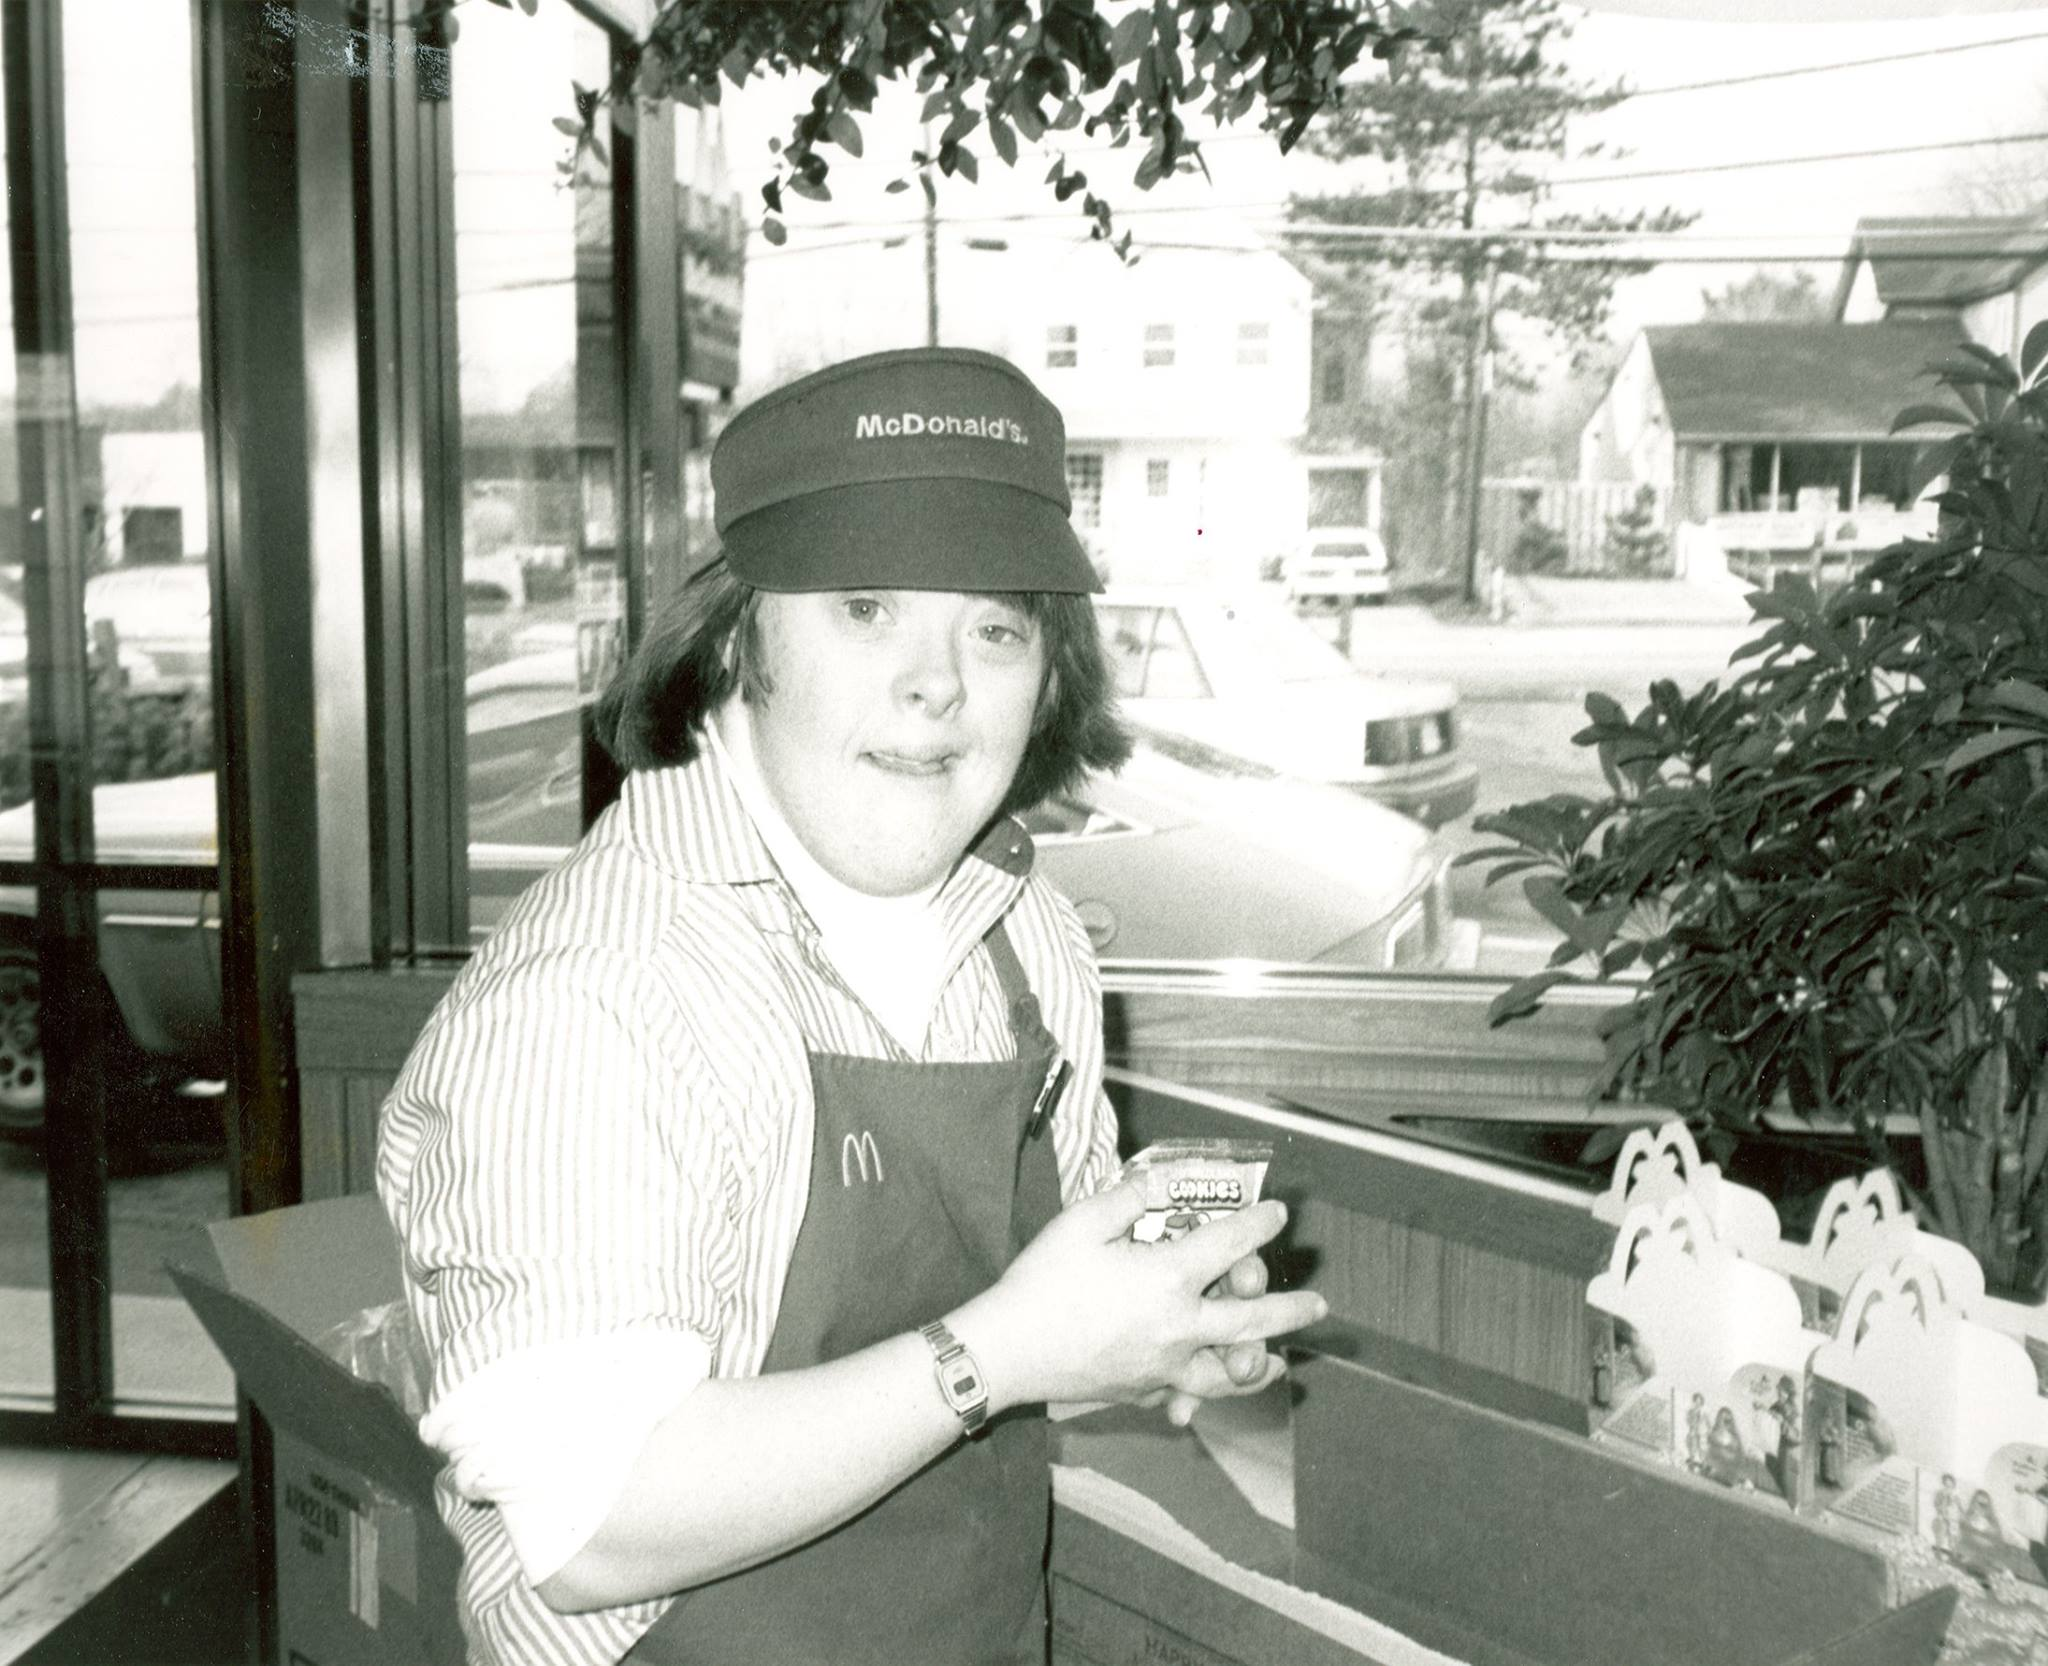 Town helps throw party for McDonald's employee with Down syndrome retiring after 32 years. https://t.co/jsM7QomrNG https://t.co/KLRkZsdFKE